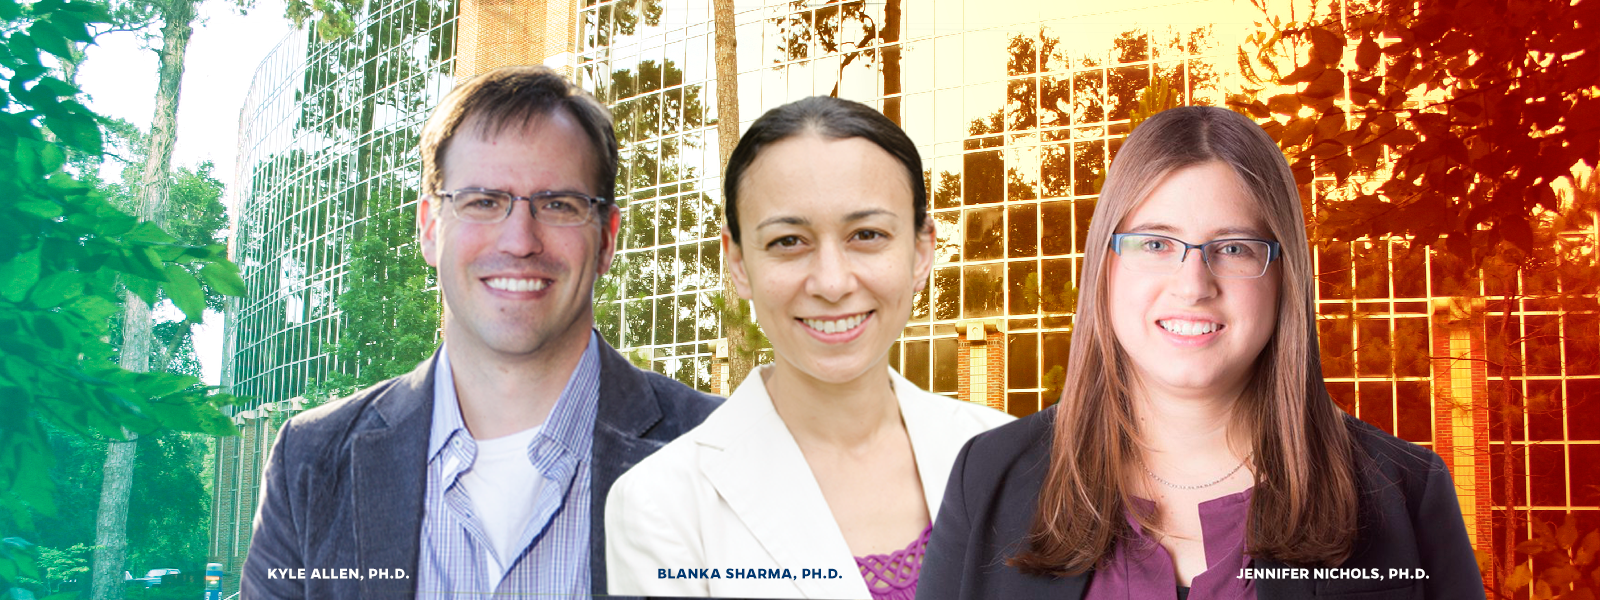 Kyle Allen Ph.D., Blanka Sharma, Ph.D. and Jennifer Nichols, Ph.D.